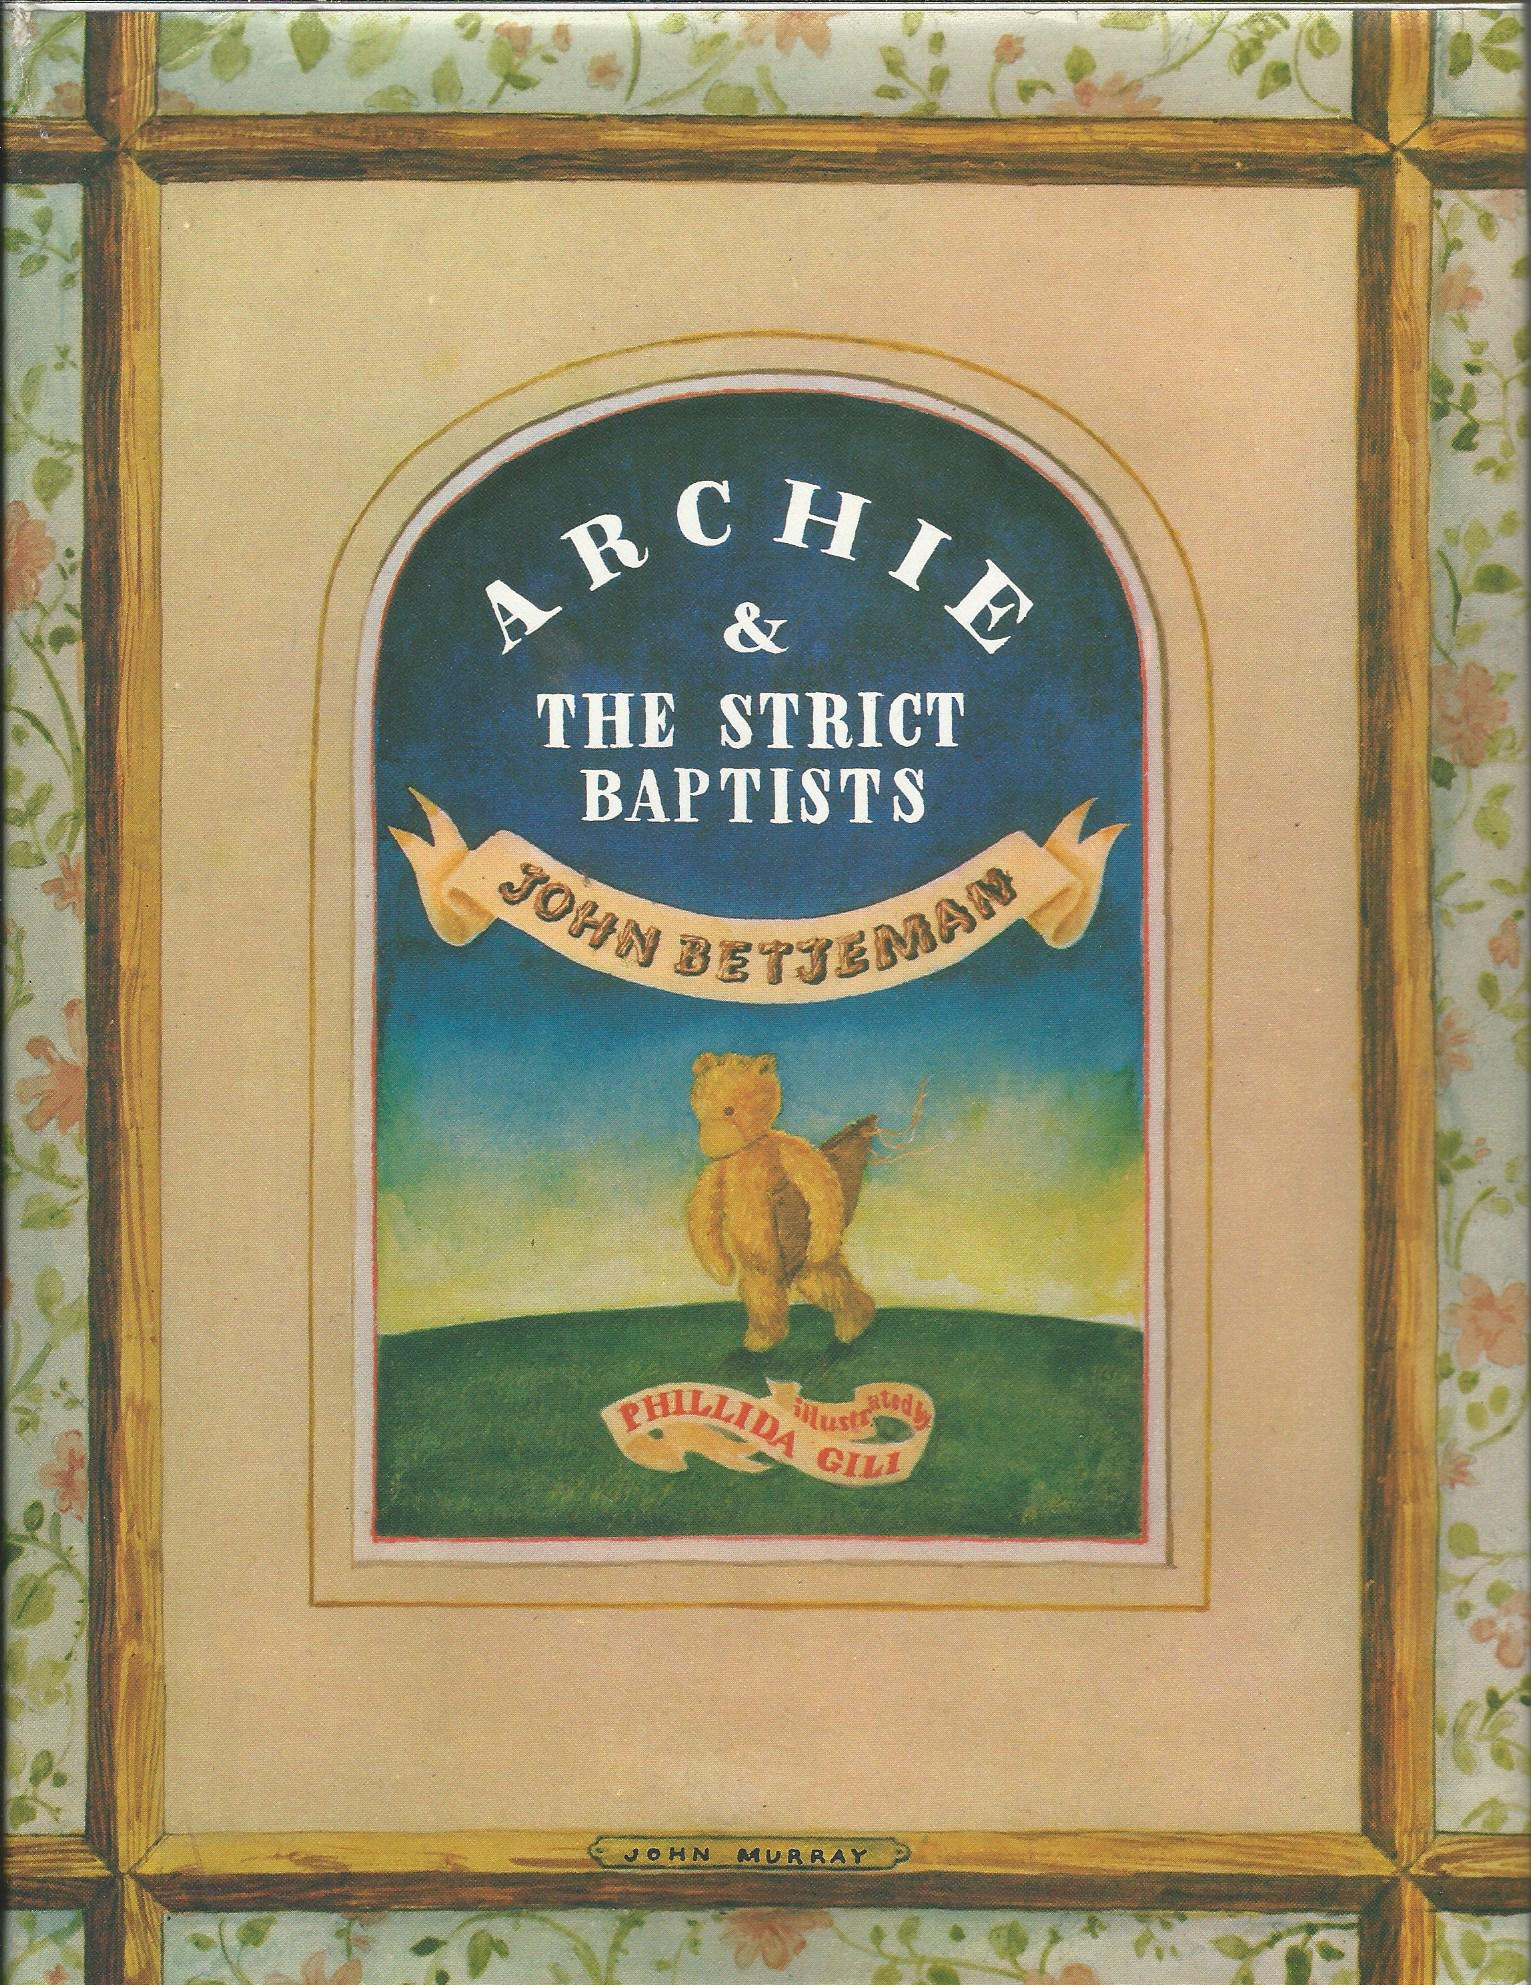 Image for Archie and the Strict Baptists.